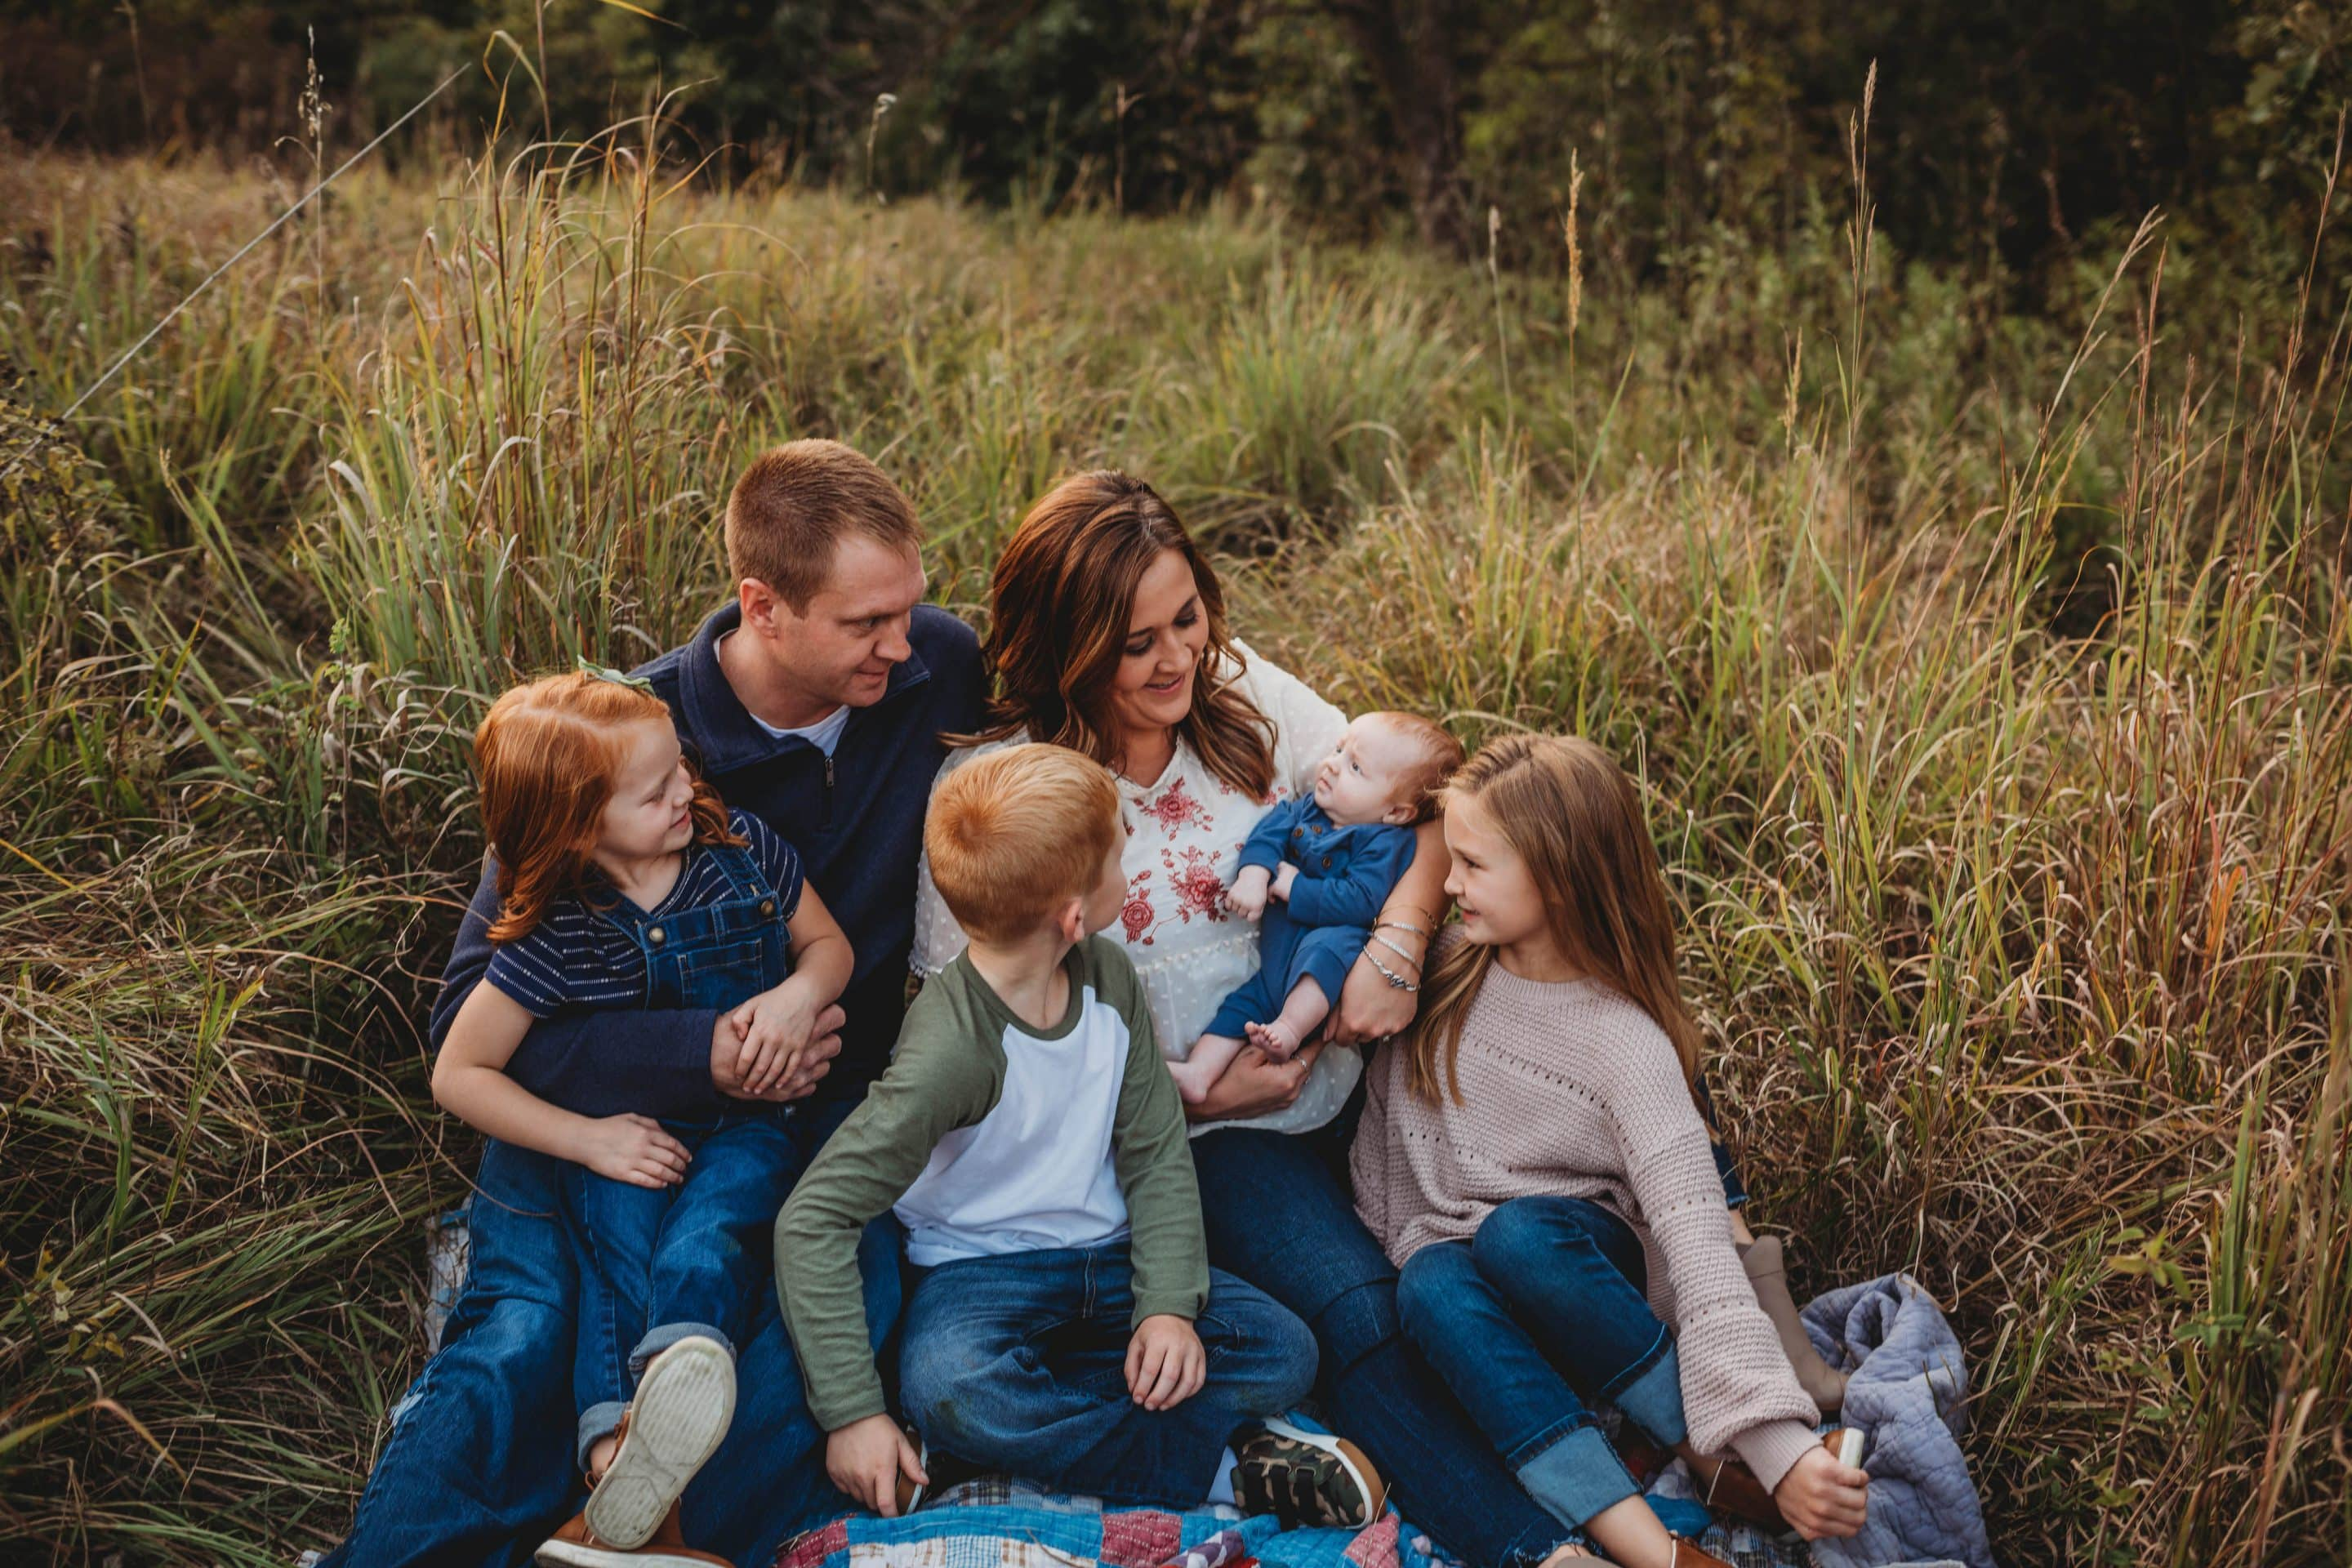 family photo by lindsey willis photography